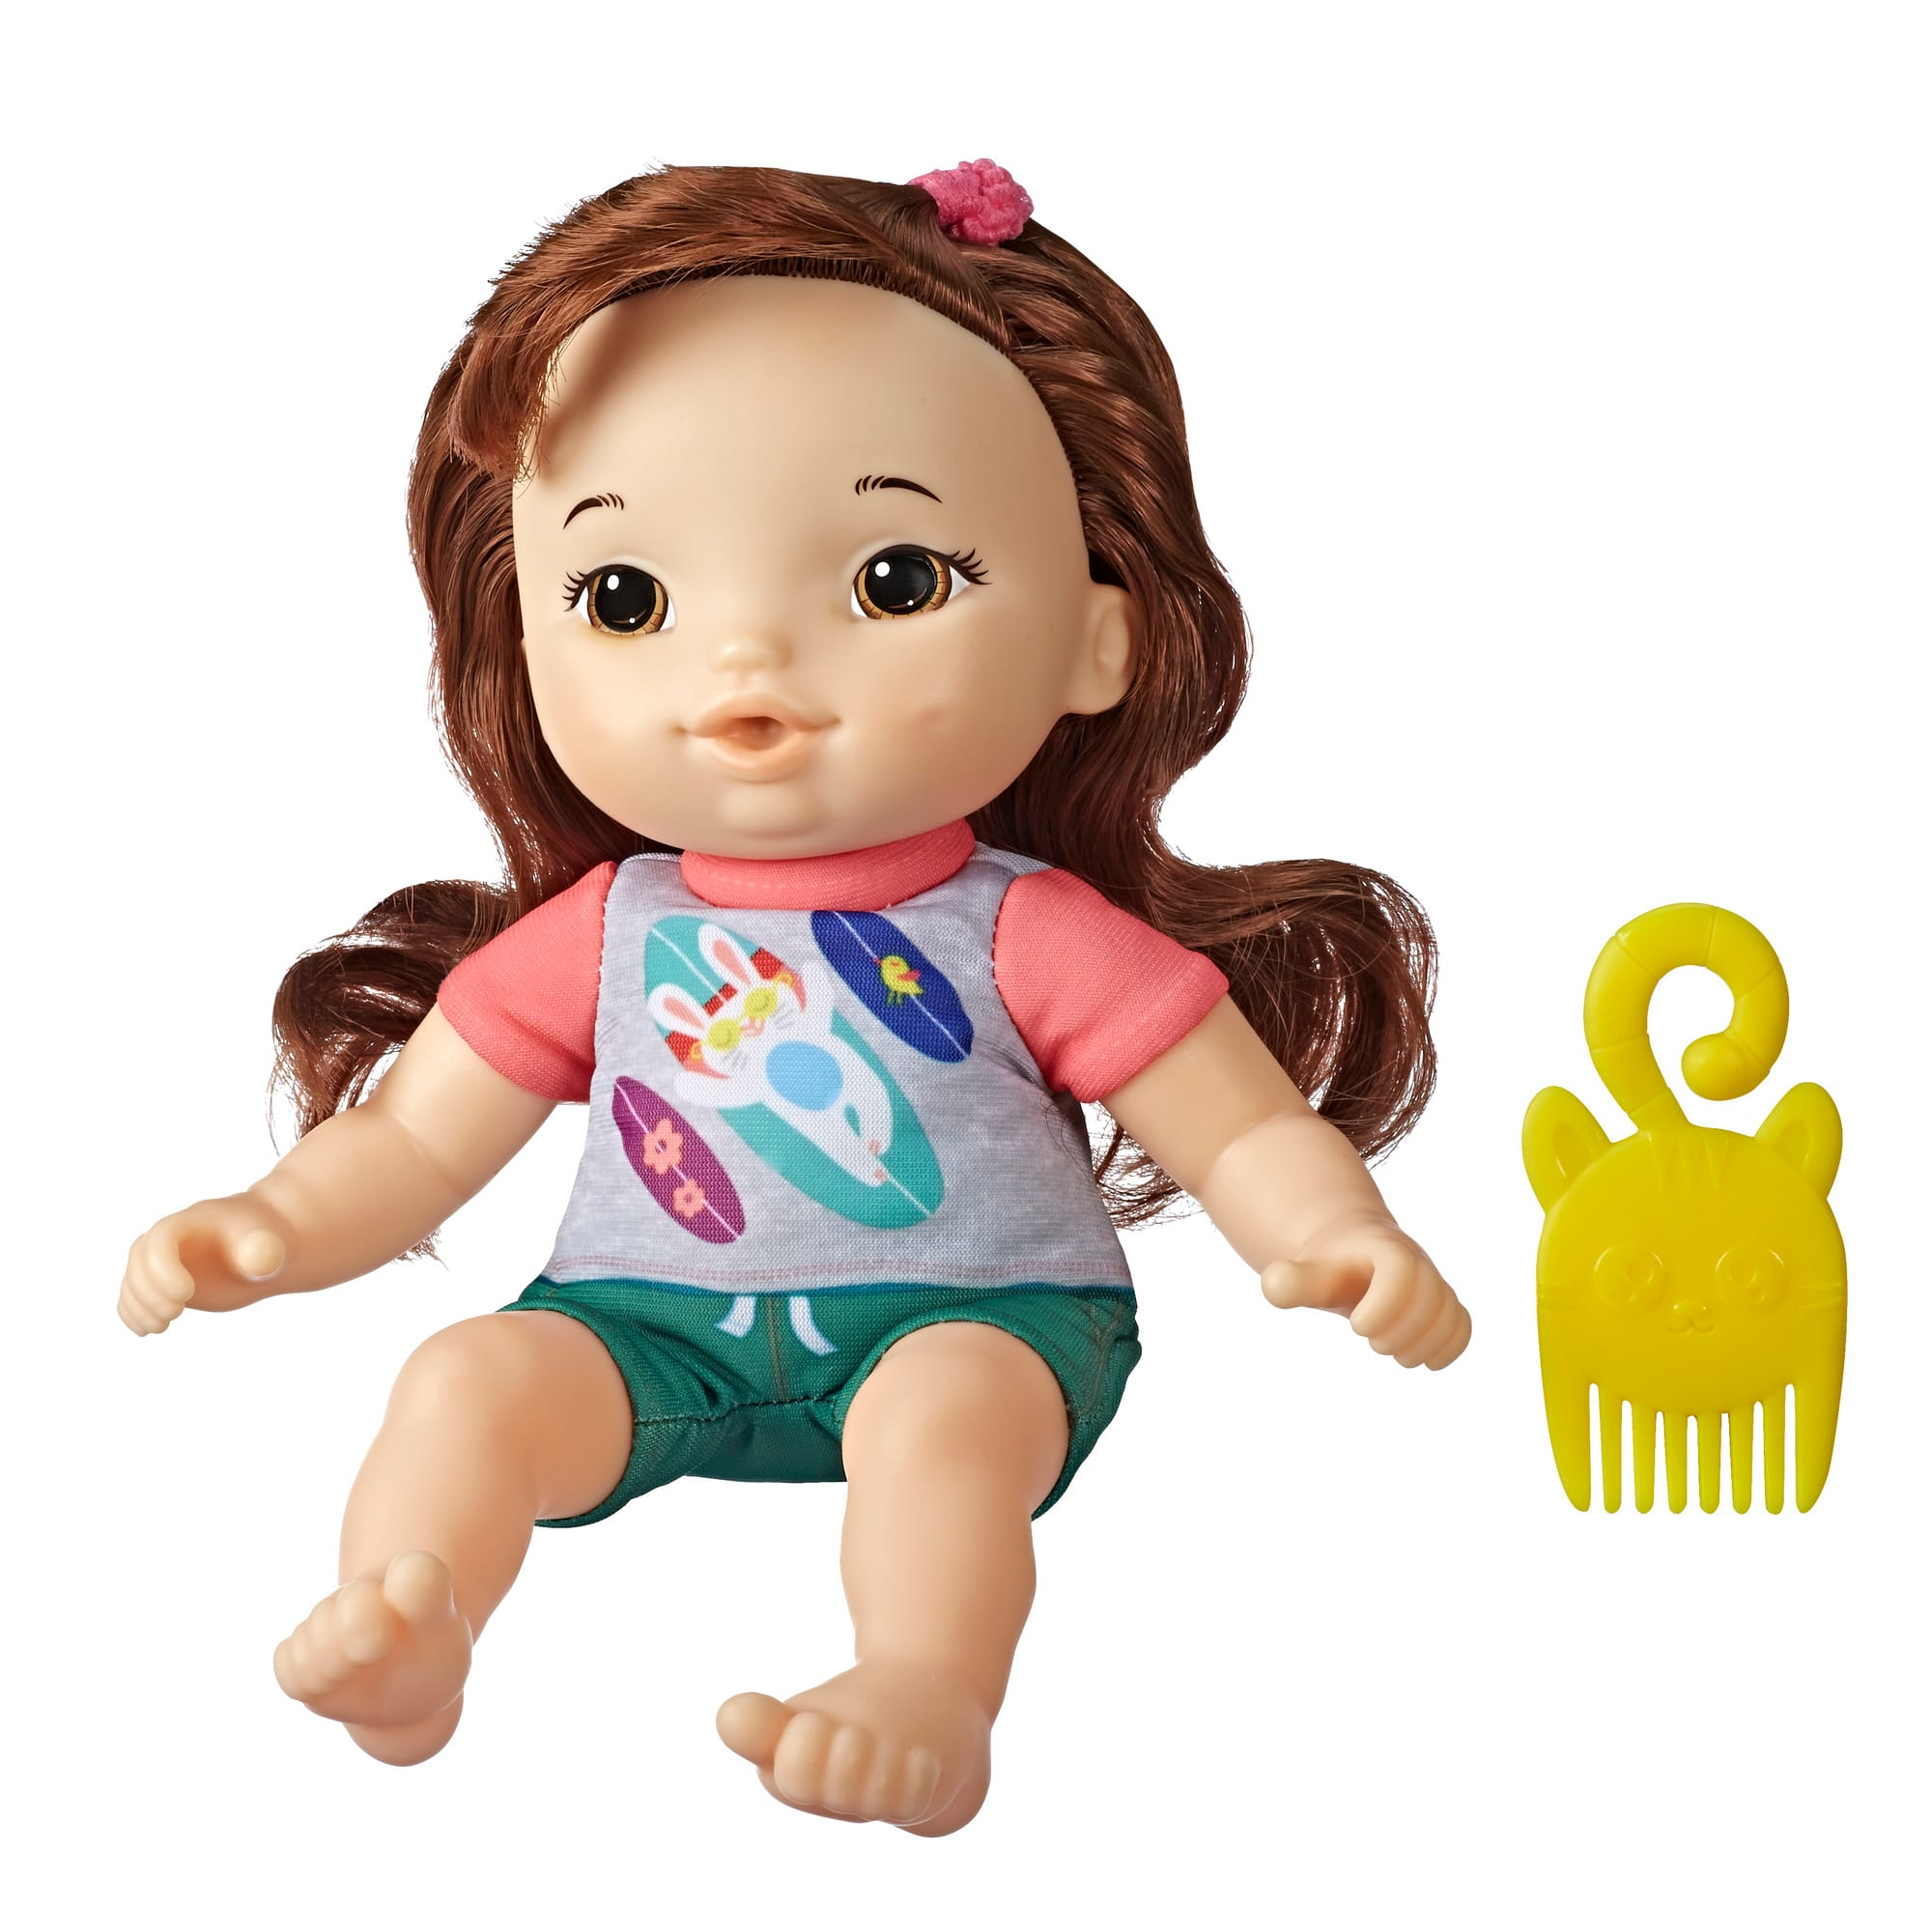 """Littles by Baby Alive 9"""" Little Maya Doll w/ Comb $4.95 + Free Shipping w/ Walmart+ or Orders $35+"""